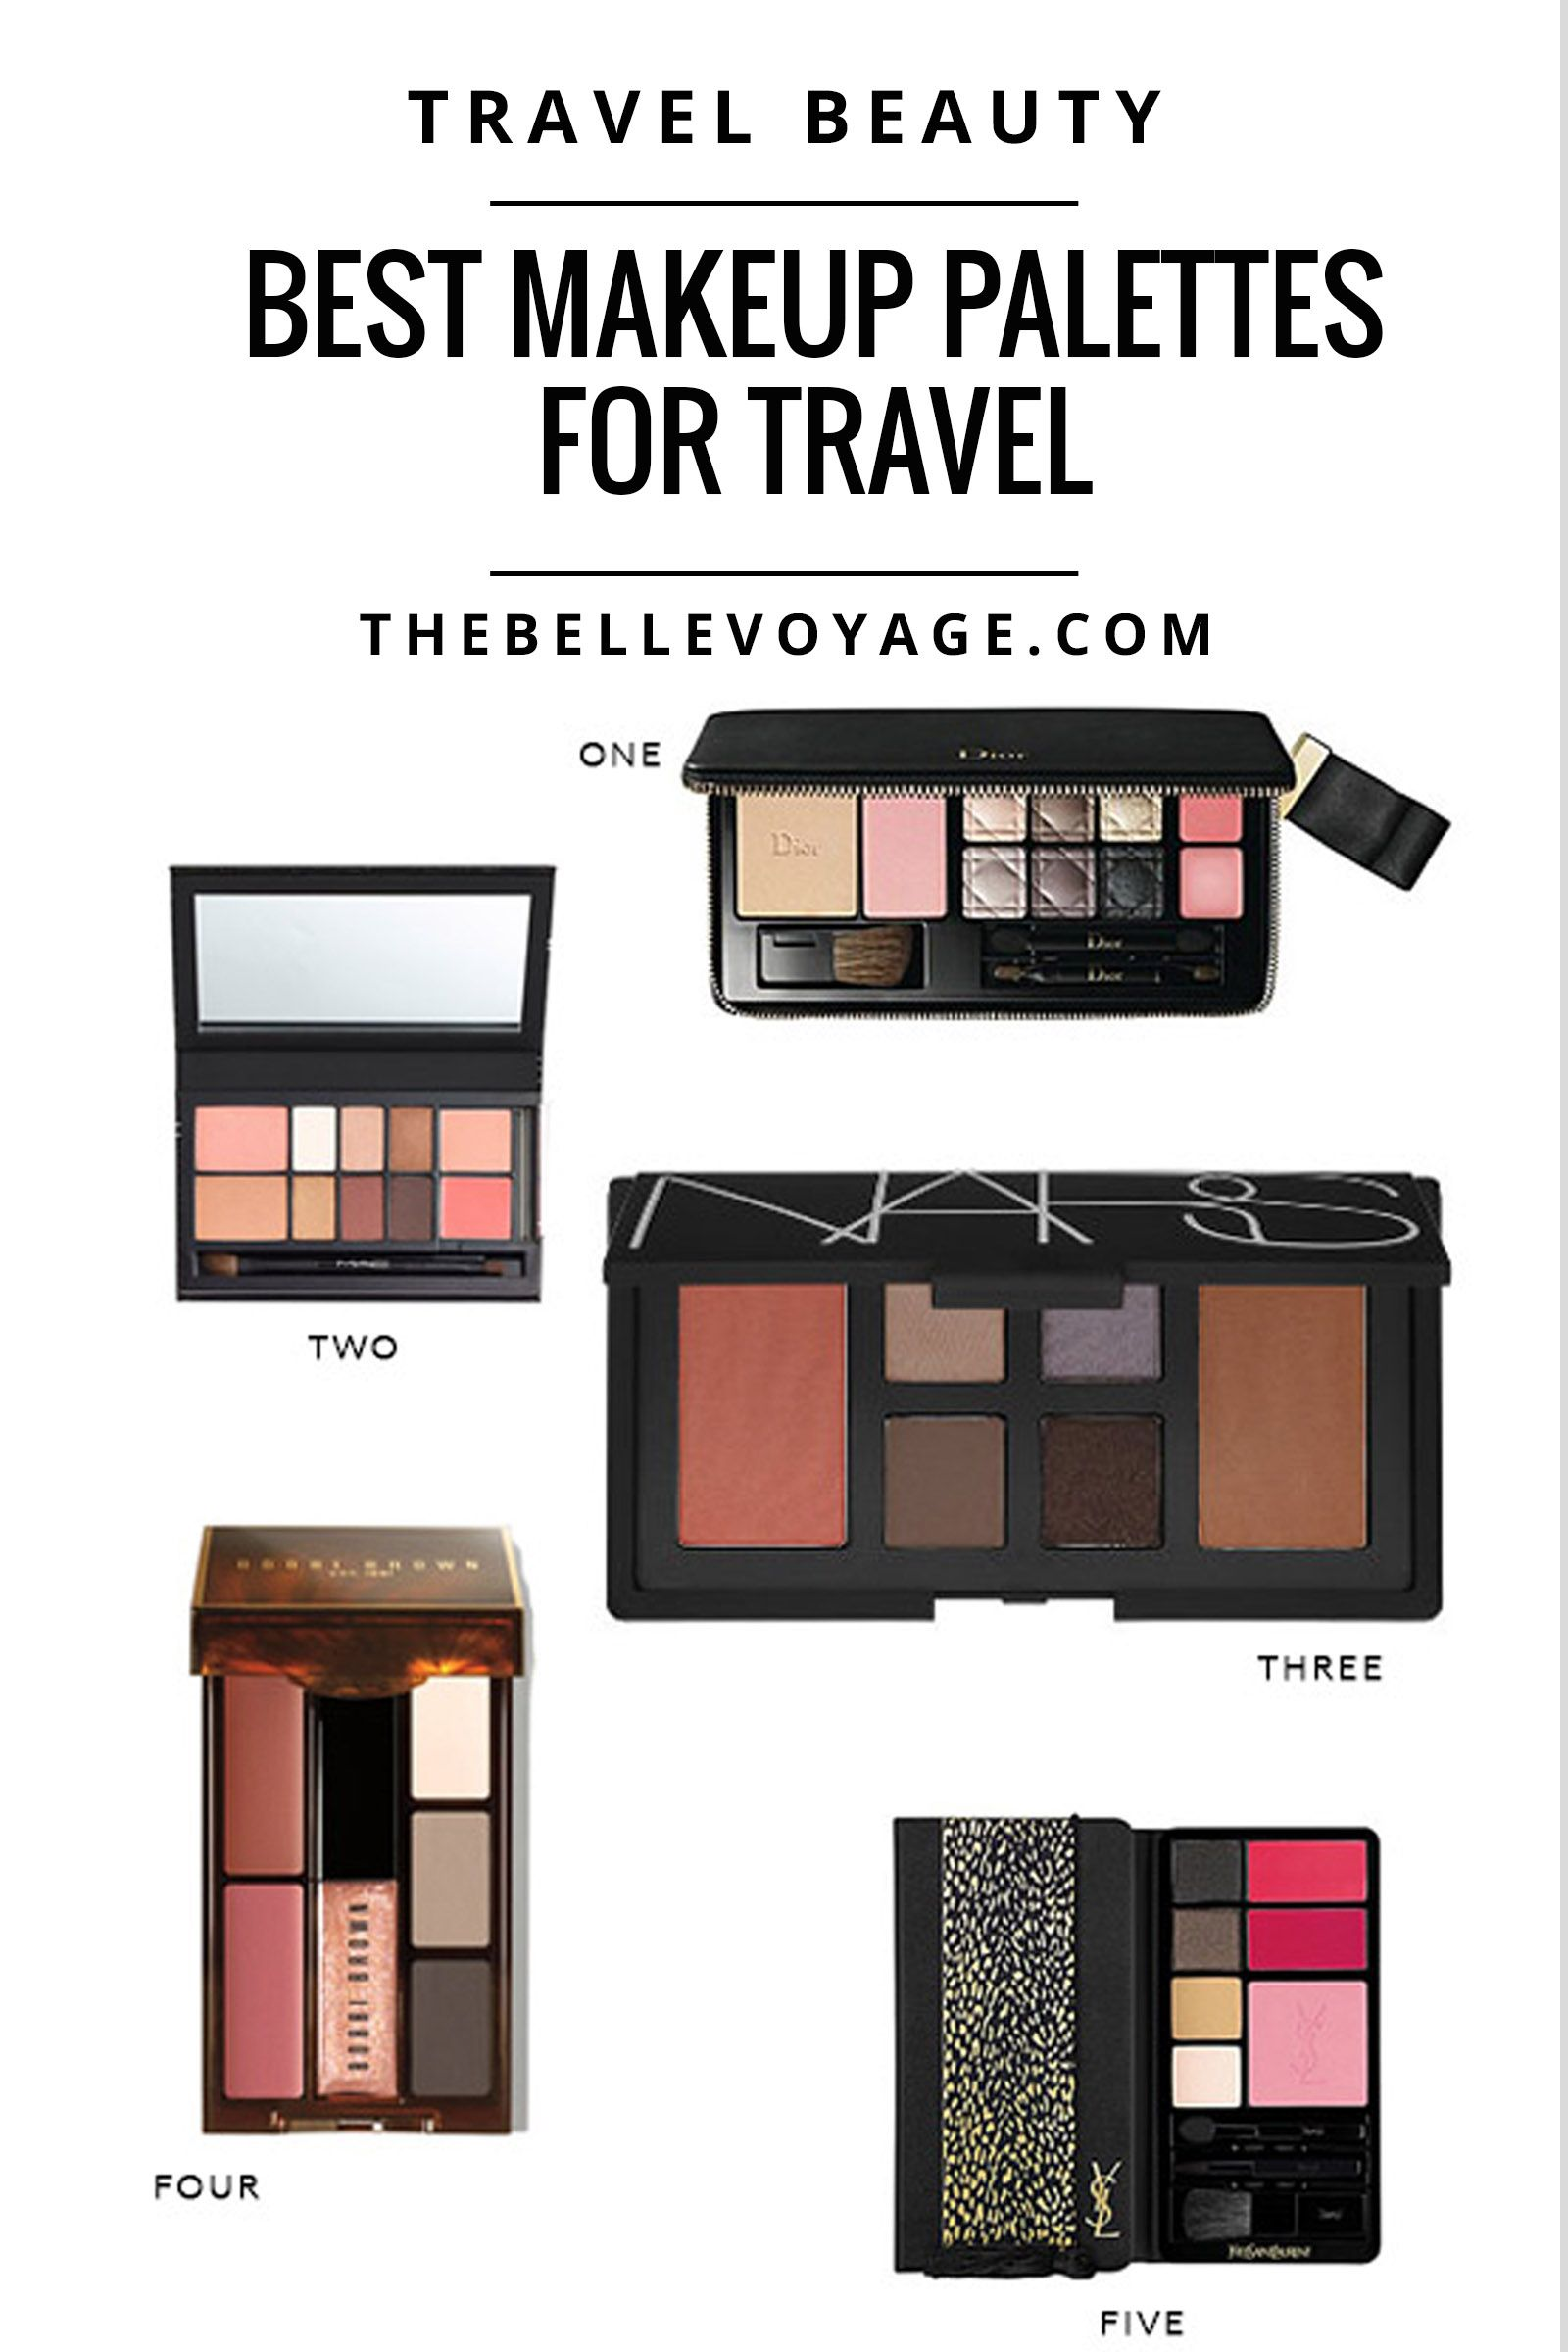 The Best Makeup Palettes for Travel Best makeup palettes